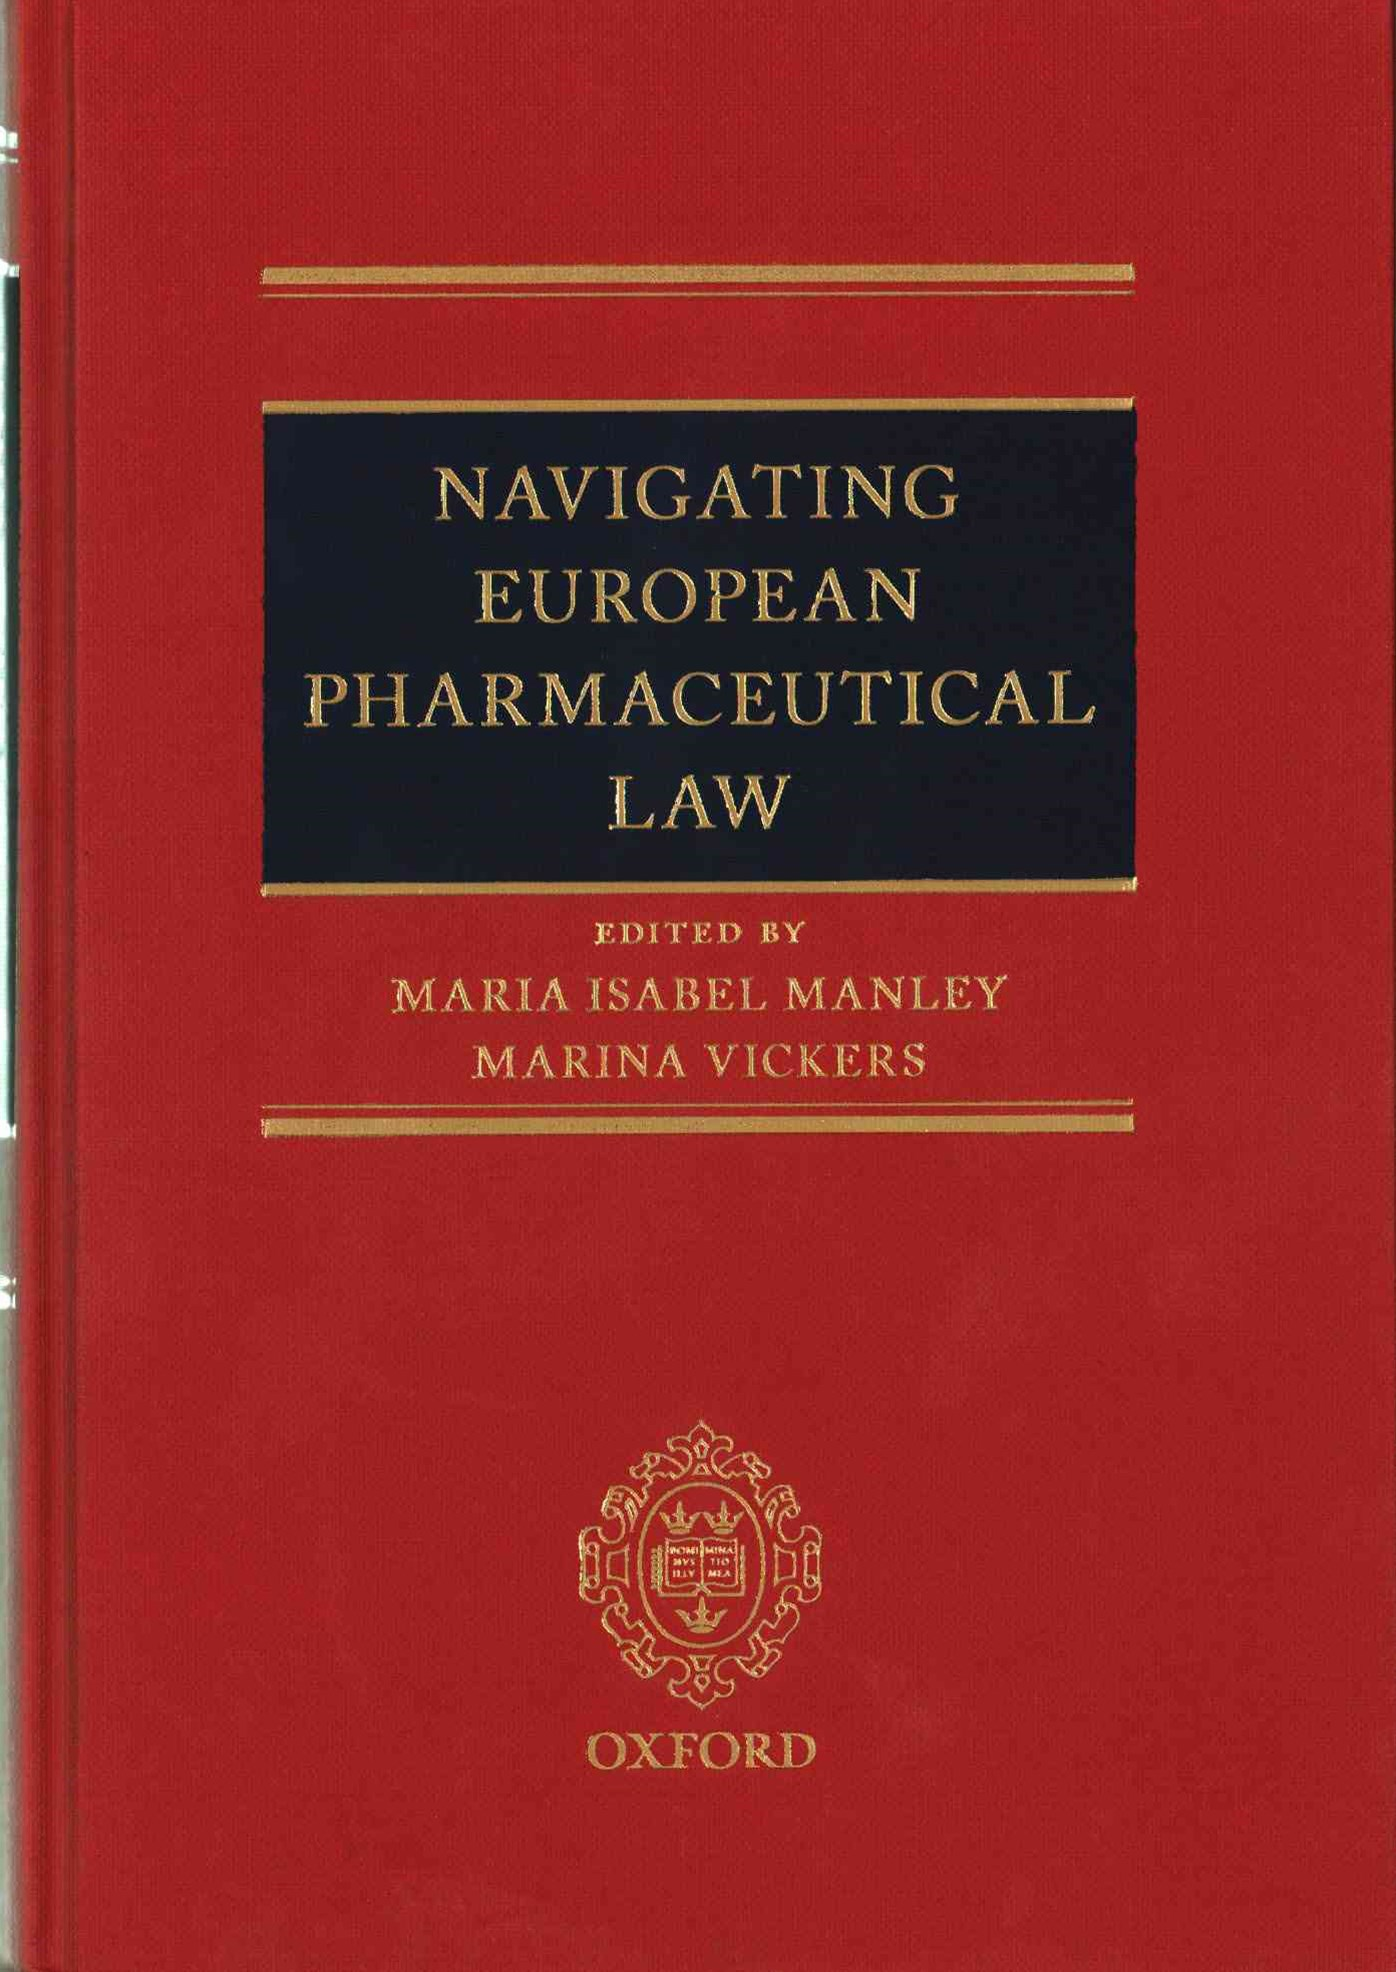 Navigating European Pharmaceutical Law